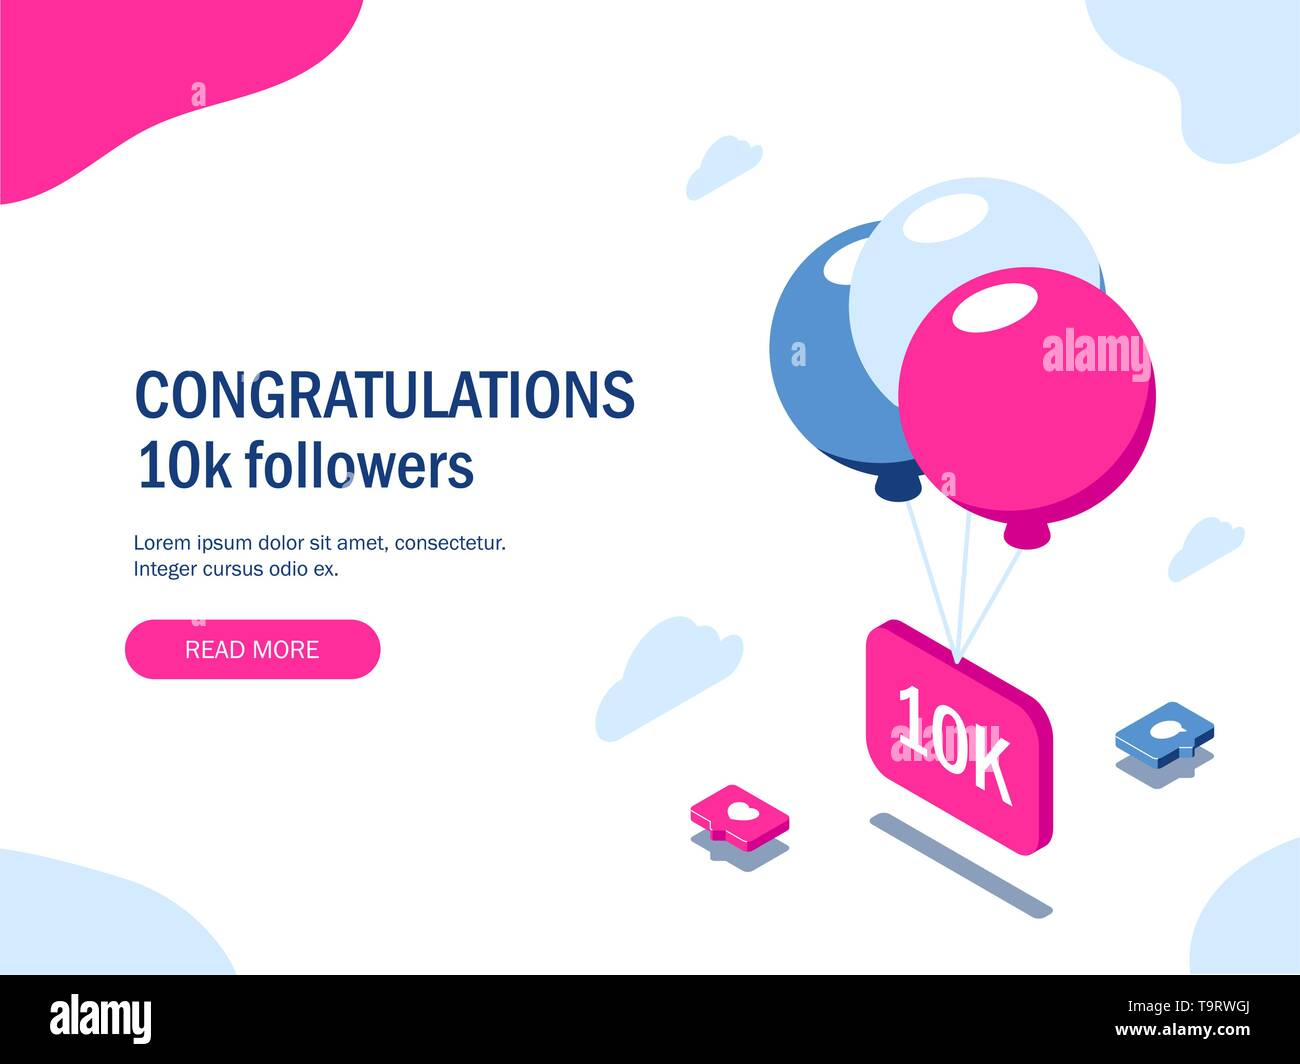 Congratulations 10k followers. Multi-colored balloons lift a sign with the inscription. Social media icons. Vector isometric 3d illustration with pink - Stock Image